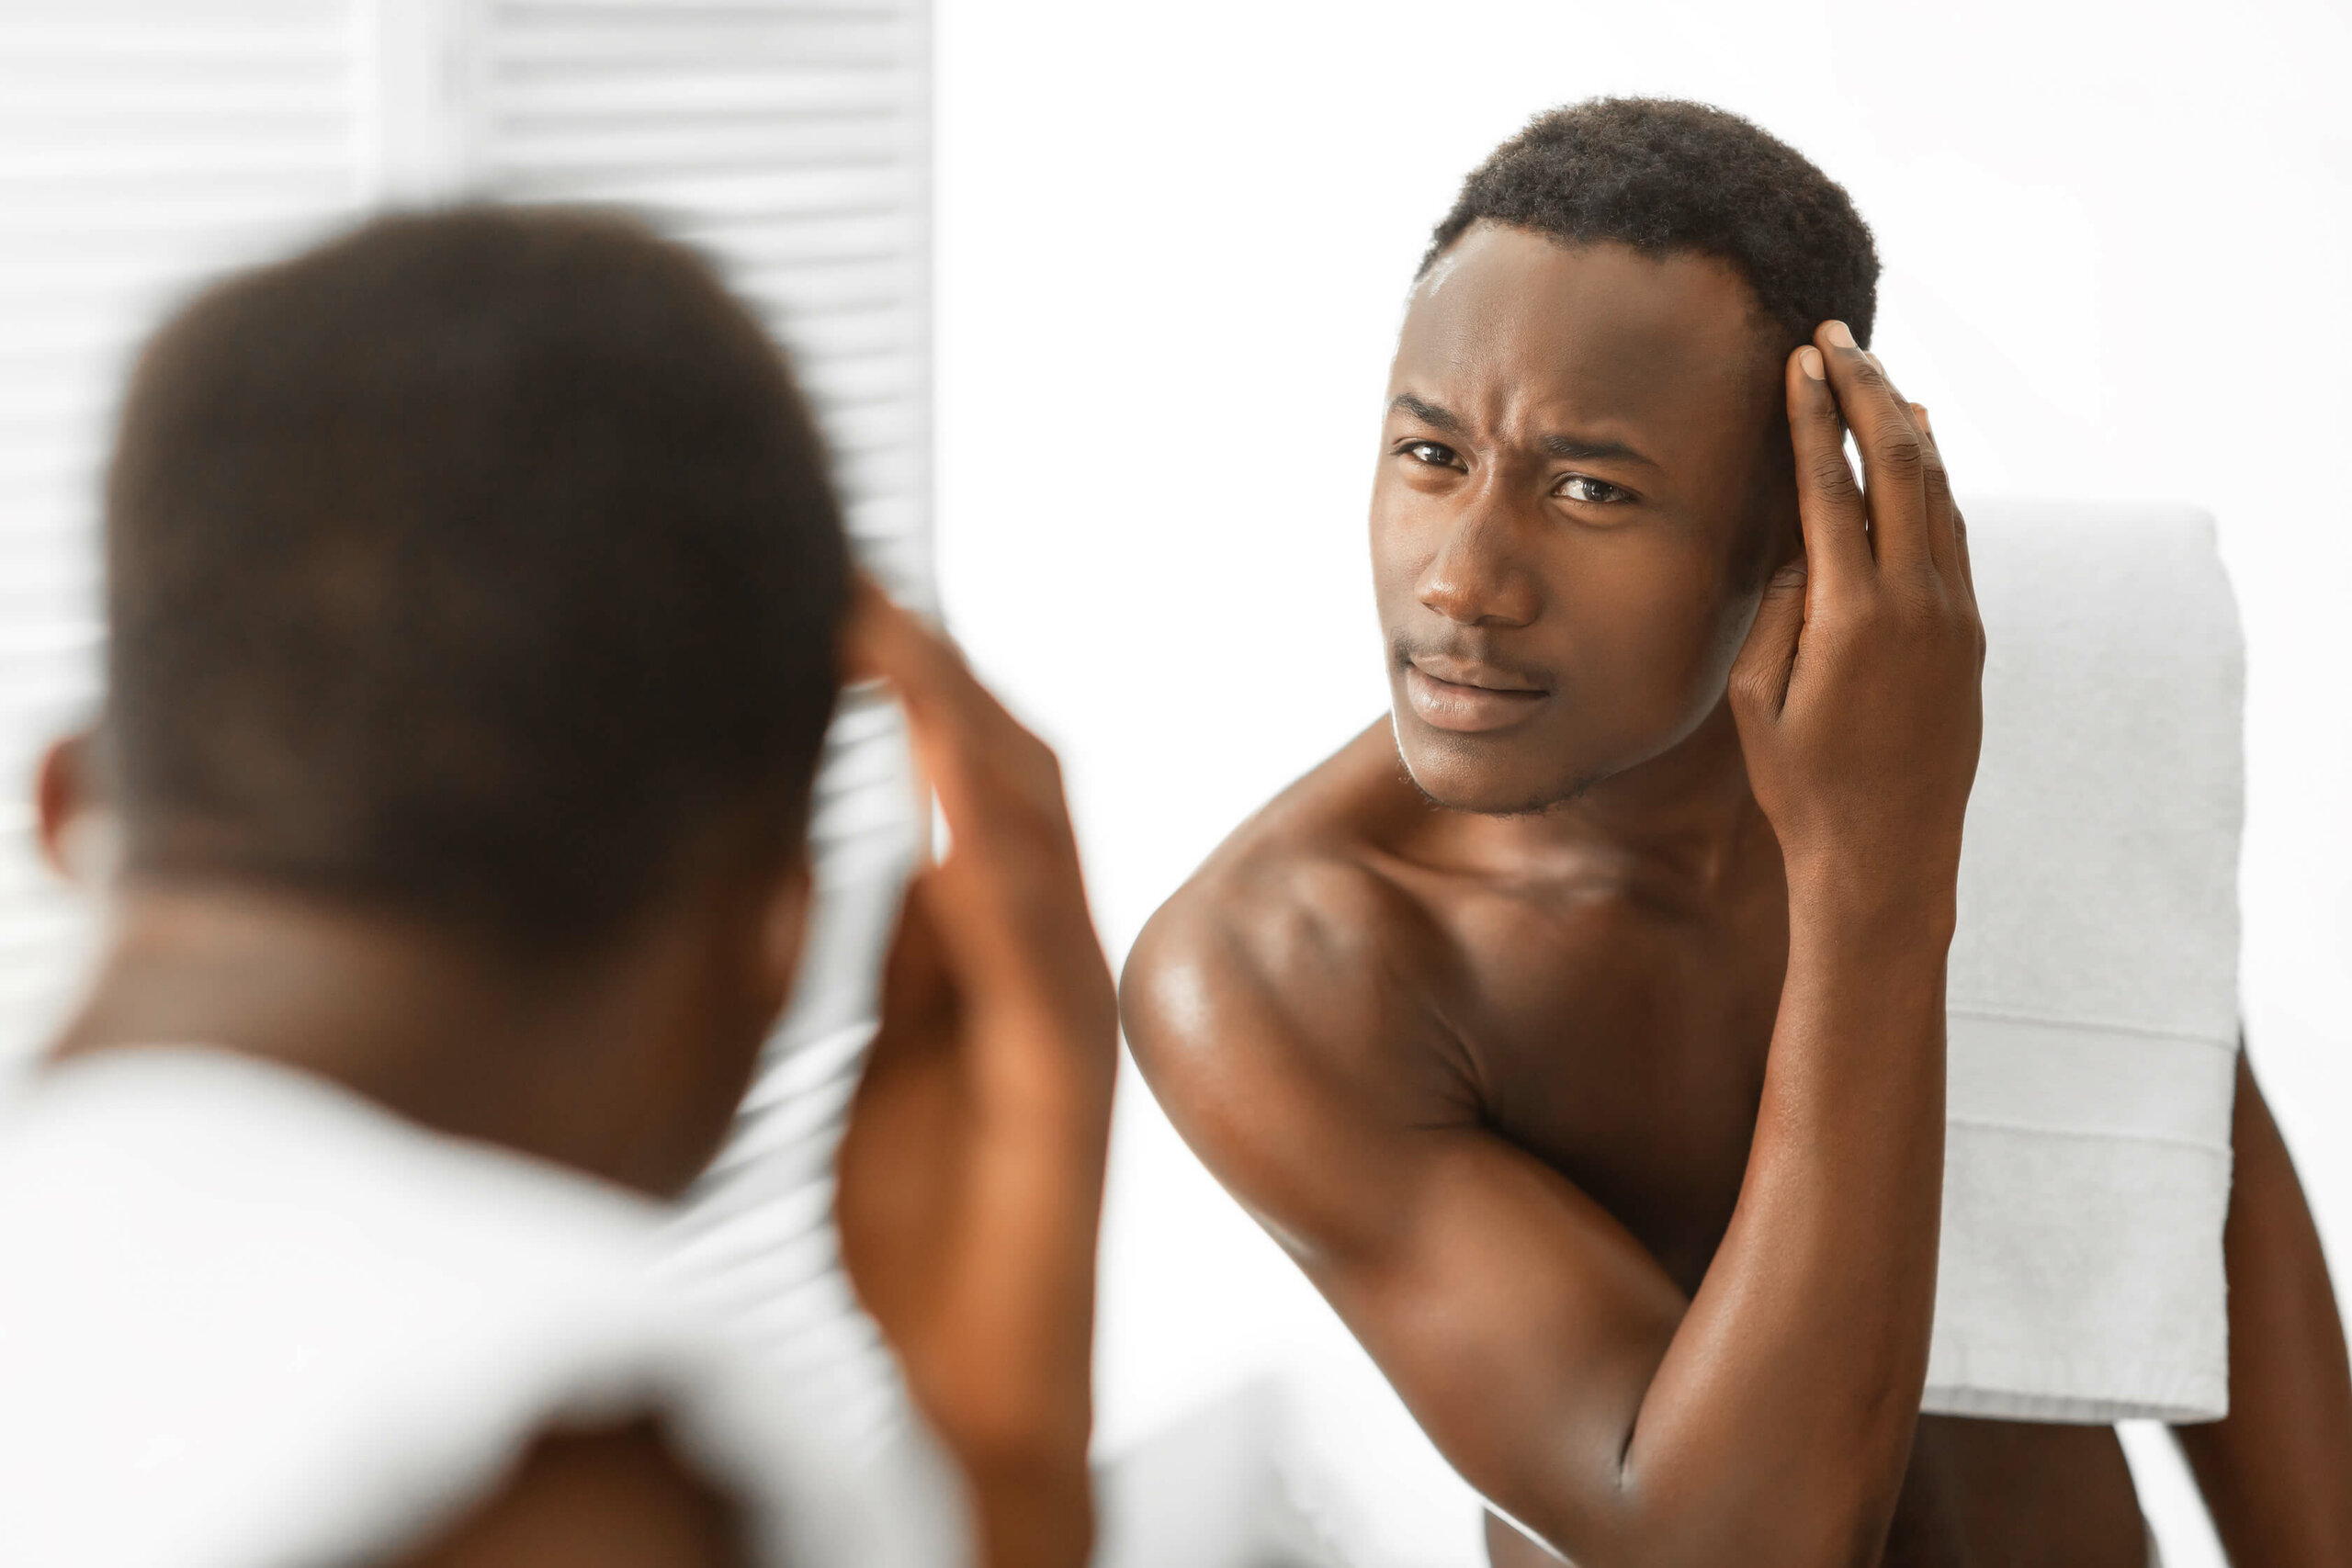 A shirtless African American man inspecting his hairline in the bathroom mirror